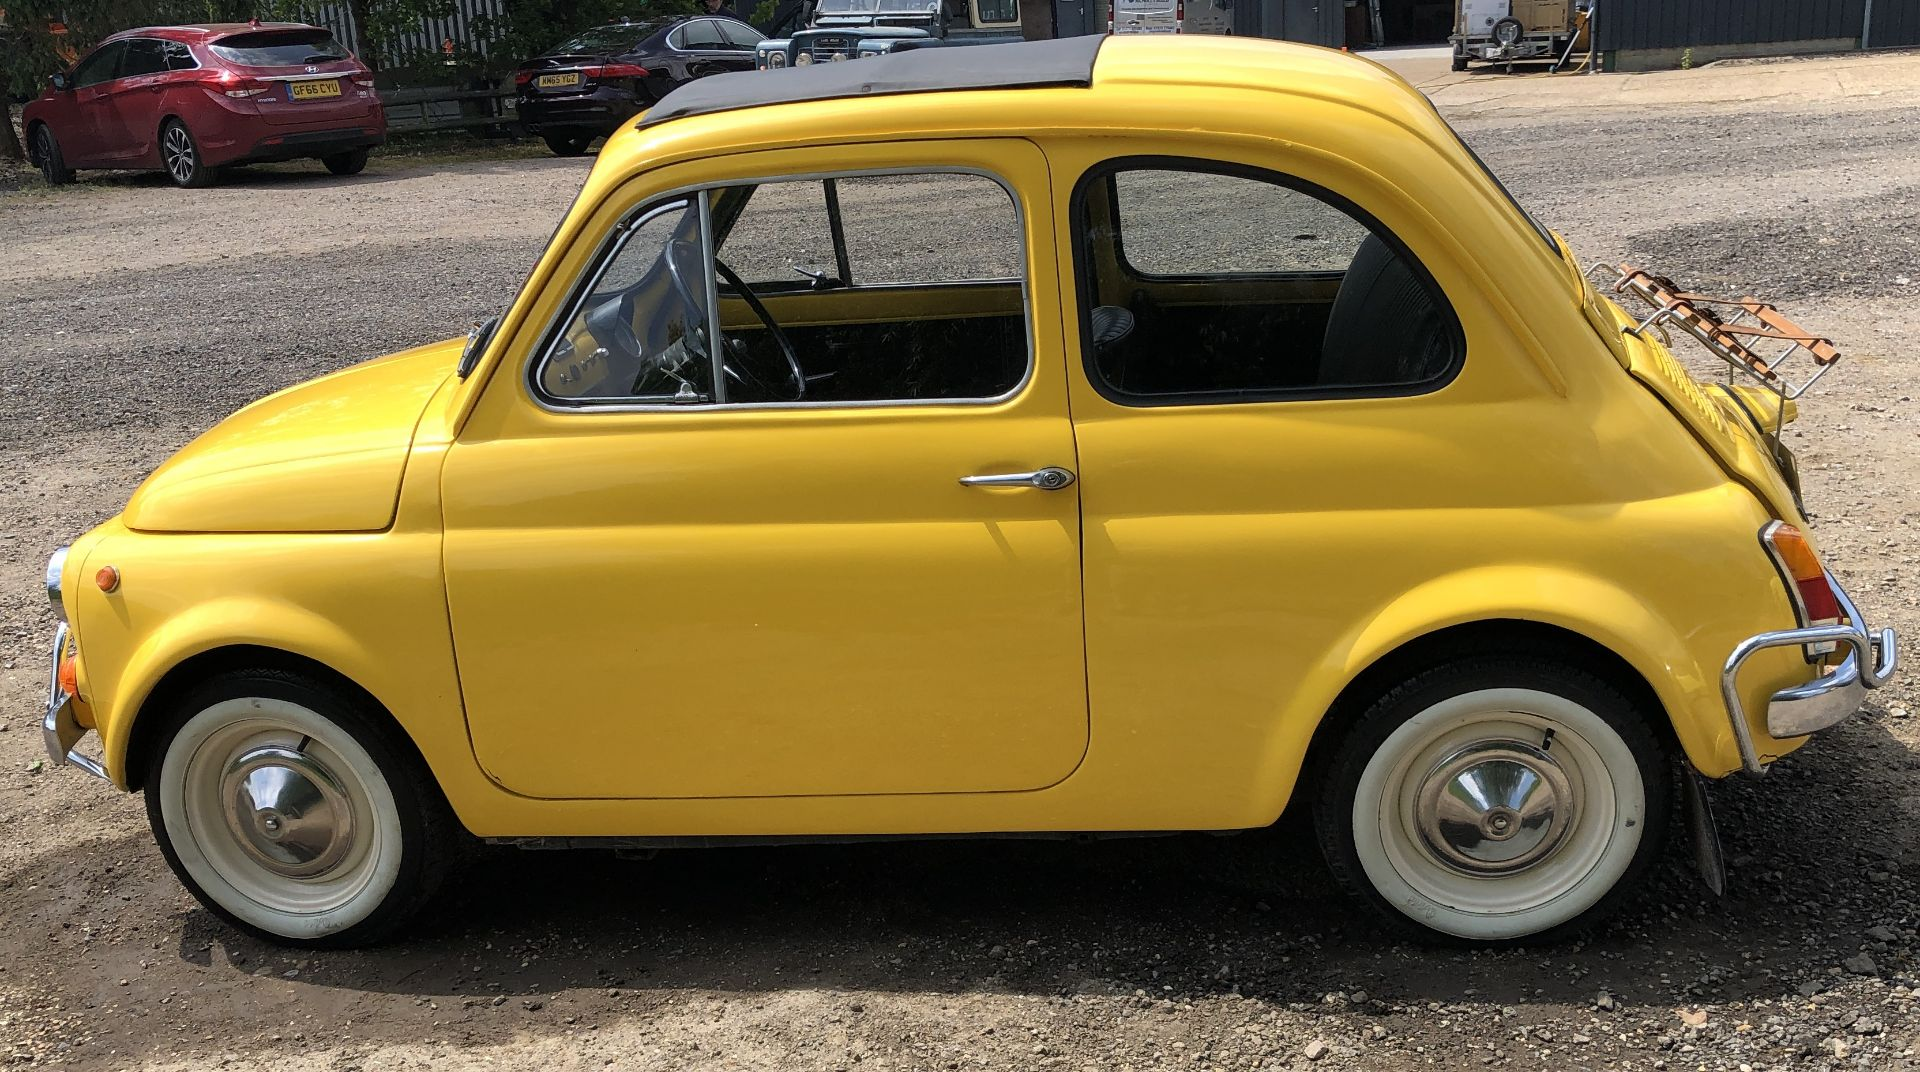 1972 Fiat 500 Saloon, Registration E-50-Man (IOM, Formally Registered as TGF 249L), First Registered - Image 7 of 34